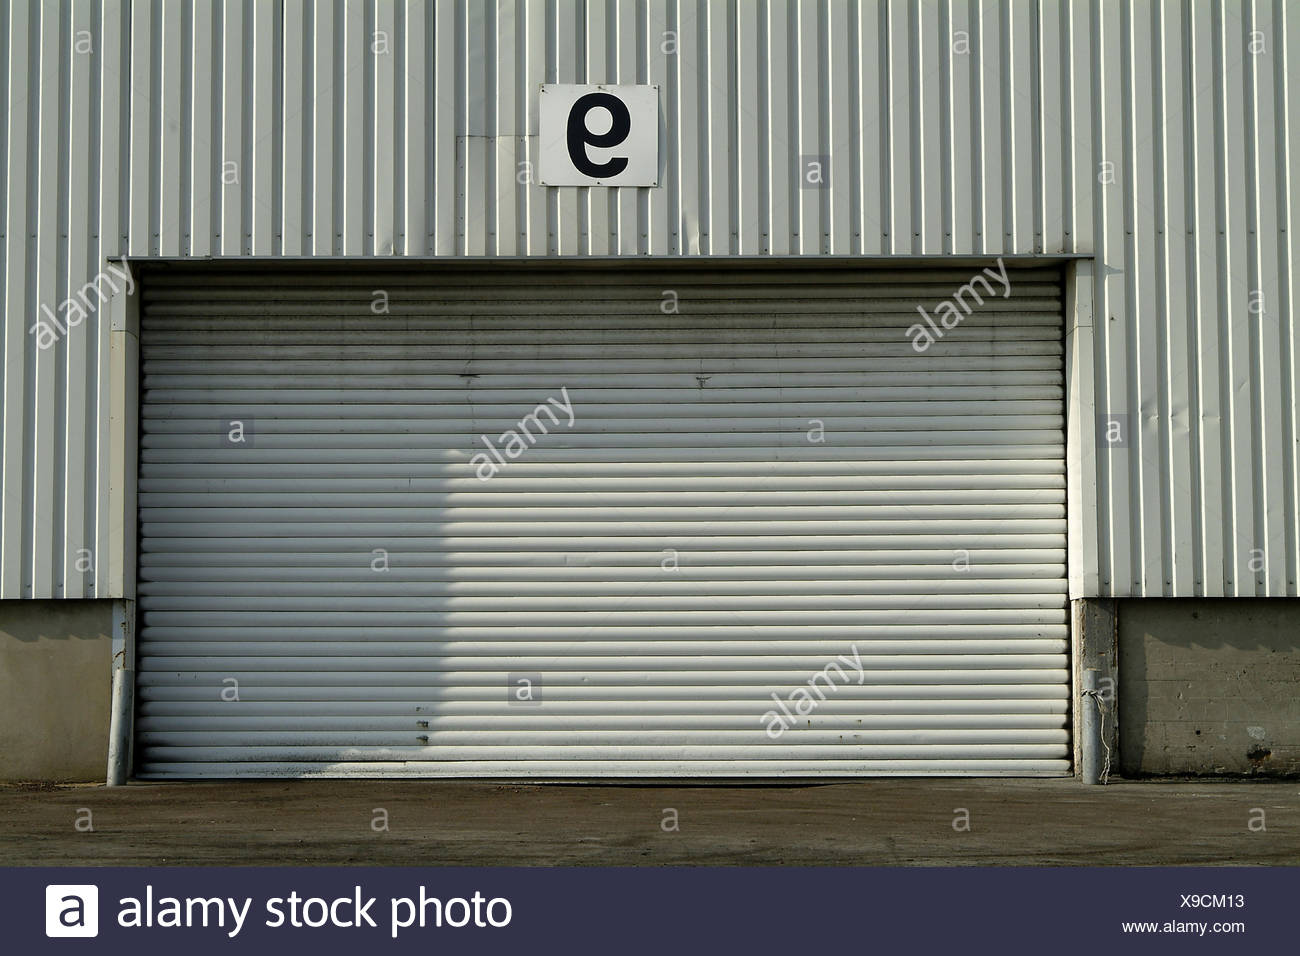 Warehouse, Detail, Garage Door, Support, Hall, Corrugated Iron, Corrugated  Iron Wall, Goal, Garage, Access, To, Sealed, Obstructs, Right To Admission,  ...